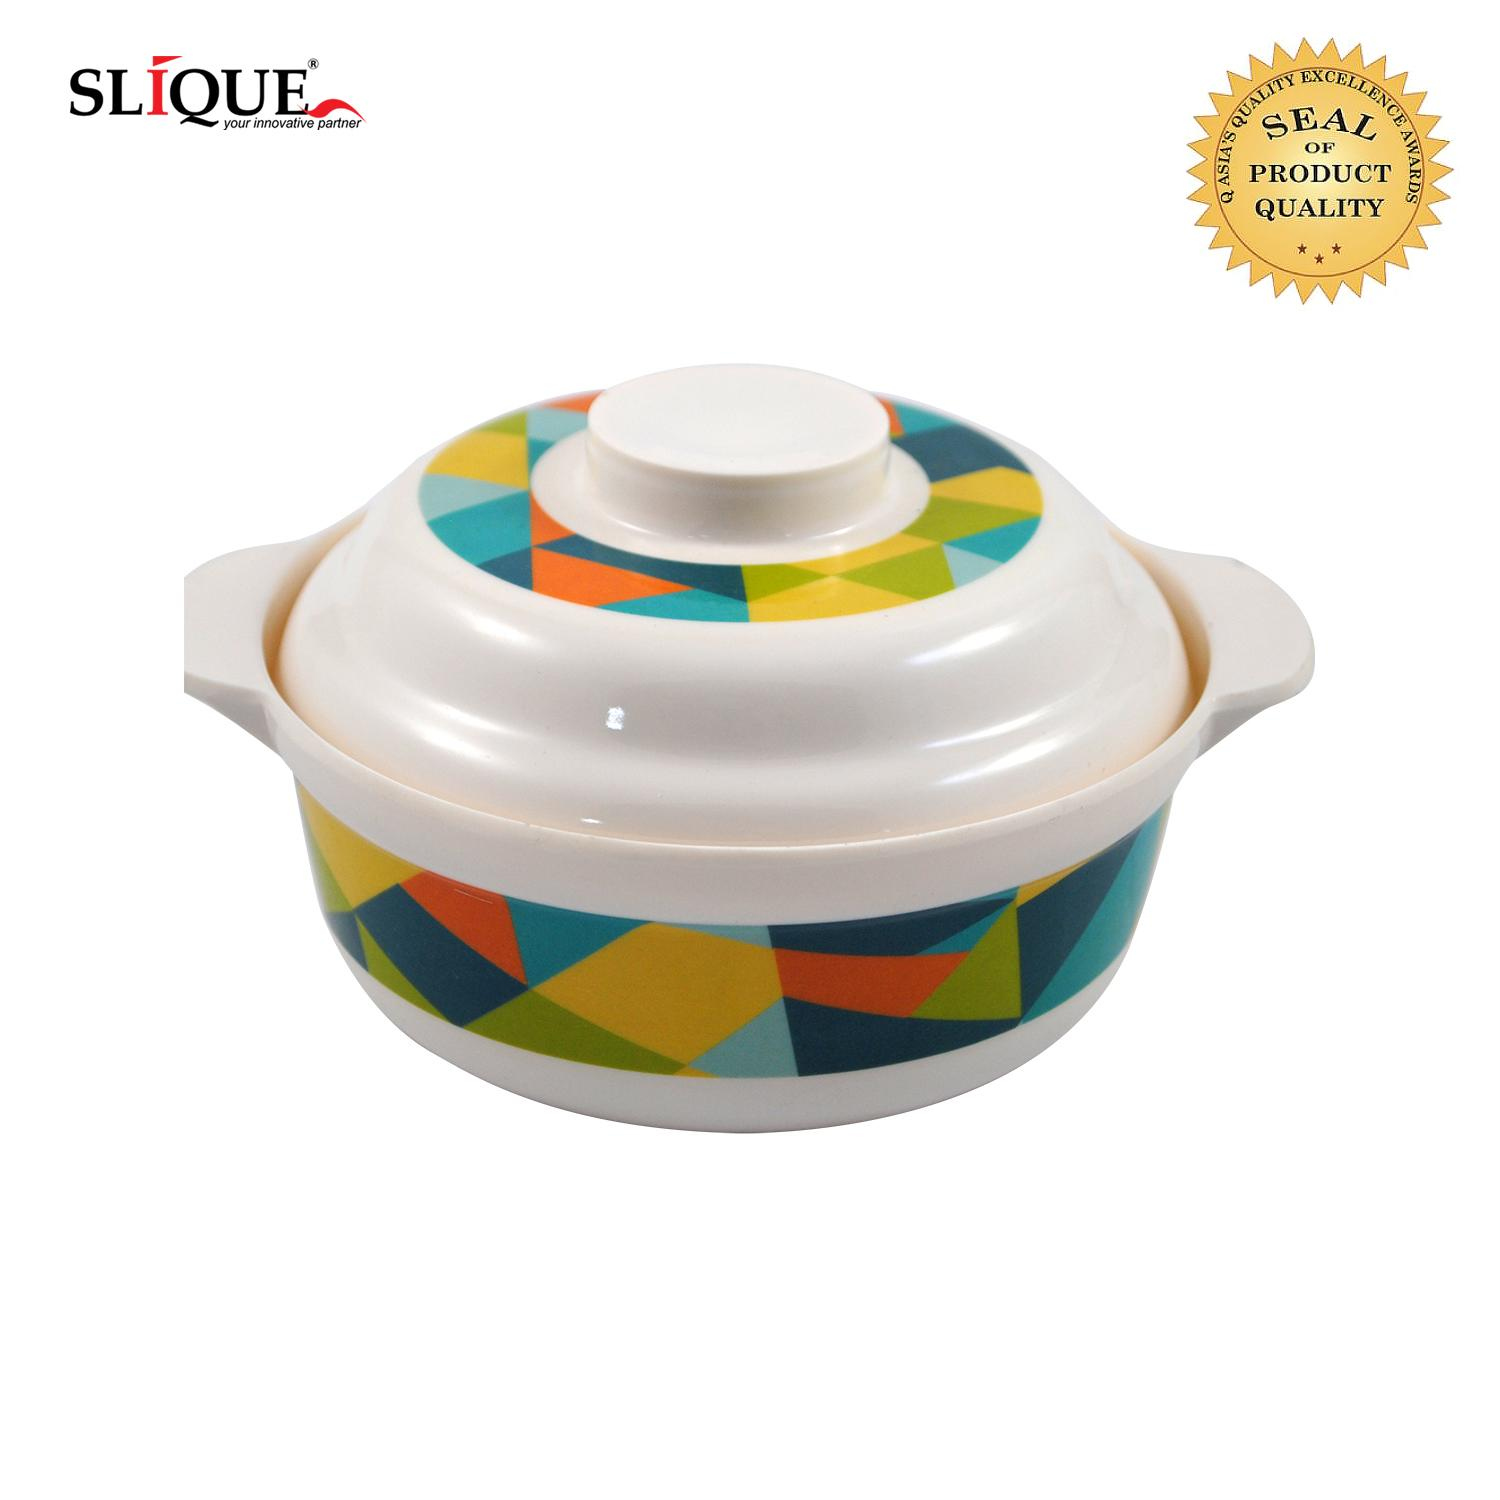 Slique Melamine Serving Bowl With Lid 6.5 Inch By Sunbeams Impex Inc..